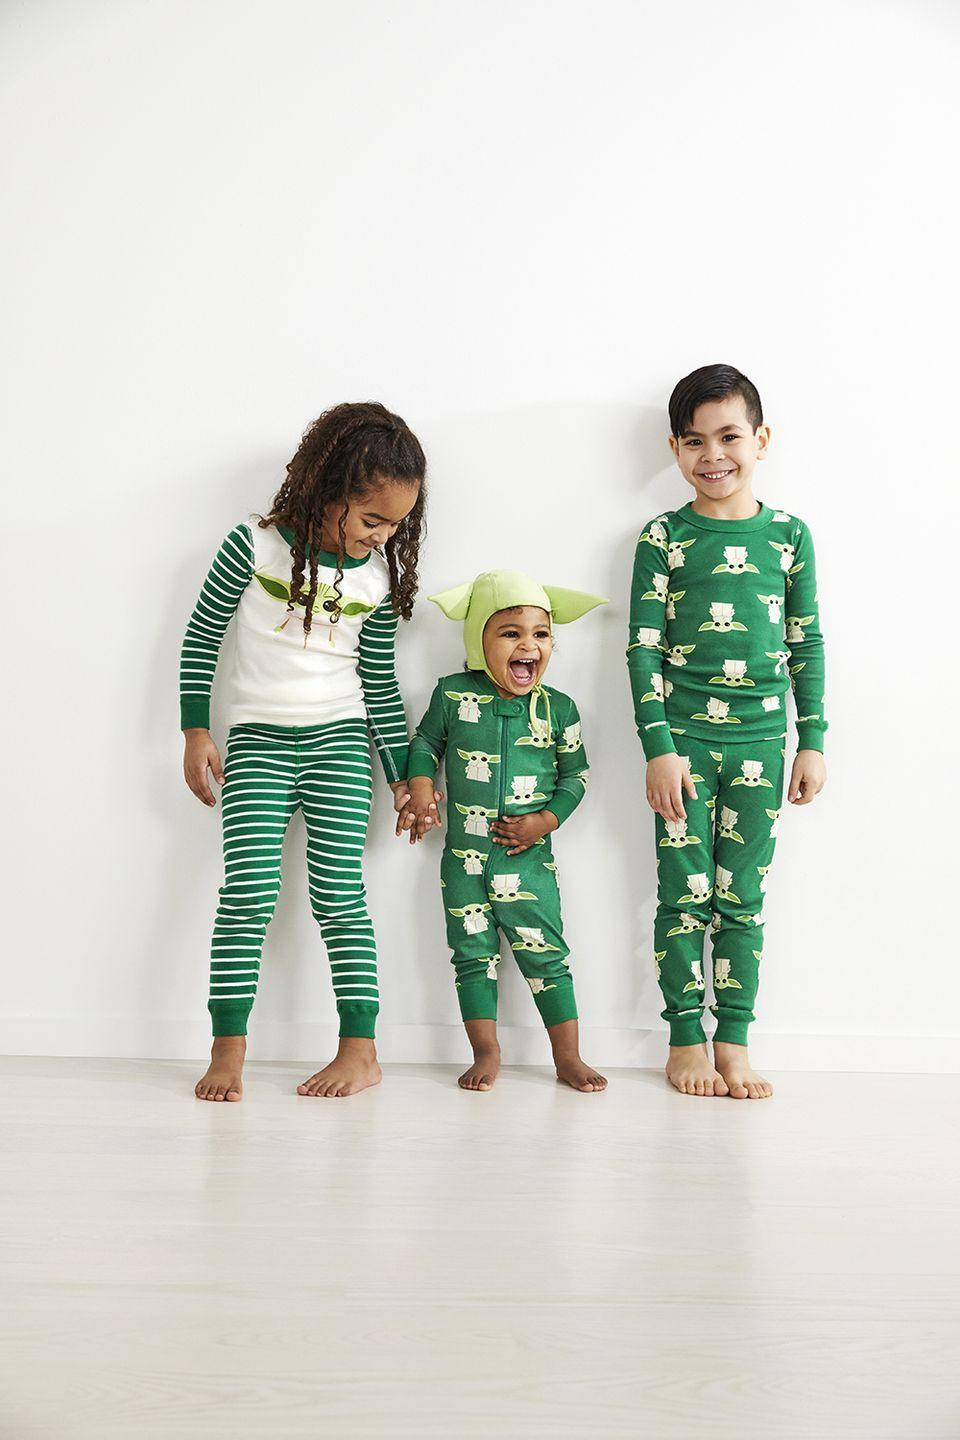 "<p>Dress <em>your</em> child up like The Child. The Hanna Andersson sleepwear is available in <a href=""https://go.redirectingat.com?id=74968X1596630&url=https%3A%2F%2Fwww.hannaandersson.com%2Fhanna-friends-star-wars%2F65018-TL8.html&sref=https%3A%2F%2Fwww.goodhousekeeping.com%2Fholidays%2Fgift-ideas%2Fg29624061%2Fstar-wars-gifts%2F"" rel=""nofollow noopener"" target=""_blank"" data-ylk=""slk:kids' long johns"" class=""link rapid-noclick-resp"">kids' long johns</a>, a <a href=""https://go.redirectingat.com?id=74968X1596630&url=https%3A%2F%2Fwww.hannaandersson.com%2Fhanna-friends-star-wars%2F65019-TL8.html&sref=https%3A%2F%2Fwww.goodhousekeeping.com%2Fholidays%2Fgift-ideas%2Fg29624061%2Fstar-wars-gifts%2F"" rel=""nofollow noopener"" target=""_blank"" data-ylk=""slk:one-piece sleeper"" class=""link rapid-noclick-resp"">one-piece sleeper</a>, a <a href=""https://go.redirectingat.com?id=74968X1596630&url=https%3A%2F%2Fwww.hannaandersson.com%2Fhanna-friends-star-wars%2F65020-TL8.html&sref=https%3A%2F%2Fwww.goodhousekeeping.com%2Fholidays%2Fgift-ideas%2Fg29624061%2Fstar-wars-gifts%2F"" rel=""nofollow noopener"" target=""_blank"" data-ylk=""slk:child hat"" class=""link rapid-noclick-resp"">child hat</a>, and even adult <a href=""https://go.redirectingat.com?id=74968X1596630&url=https%3A%2F%2Fwww.hannaandersson.com%2Fhanna-friends-star-wars%2F65556-TL8.html&sref=https%3A%2F%2Fwww.goodhousekeeping.com%2Fholidays%2Fgift-ideas%2Fg29624061%2Fstar-wars-gifts%2F"" rel=""nofollow noopener"" target=""_blank"" data-ylk=""slk:PJ tops"" class=""link rapid-noclick-resp"">PJ tops</a> and <a href=""https://go.redirectingat.com?id=74968X1596630&url=https%3A%2F%2Fwww.hannaandersson.com%2Fhanna-friends-star-wars%2F65557-TL8.html&sref=https%3A%2F%2Fwww.goodhousekeeping.com%2Fholidays%2Fgift-ideas%2Fg29624061%2Fstar-wars-gifts%2F"" rel=""nofollow noopener"" target=""_blank"" data-ylk=""slk:bottoms"" class=""link rapid-noclick-resp"">bottoms</a>.</p><p><a class=""link rapid-noclick-resp"" href=""https://go.redirectingat.com?id=74968X1596630&url=https%3A%2F%2Fwww.hannaandersson.com%2Fhanna-friends-star-wars%2F&sref=https%3A%2F%2Fwww.goodhousekeeping.com%2Fholidays%2Fgift-ideas%2Fg29624061%2Fstar-wars-gifts%2F"" rel=""nofollow noopener"" target=""_blank"" data-ylk=""slk:BUY NOW"">BUY NOW</a></p>"